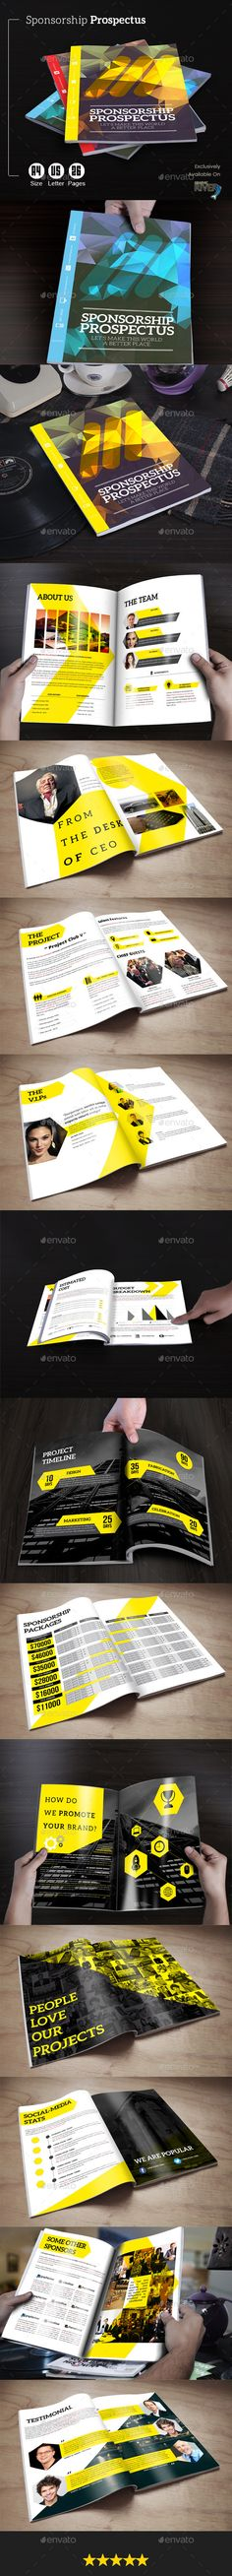 Sponsorship Prospectus Template #design Download: http://graphicriver.net/item/sponsorship-prospectus/12161993?ref=ksioks